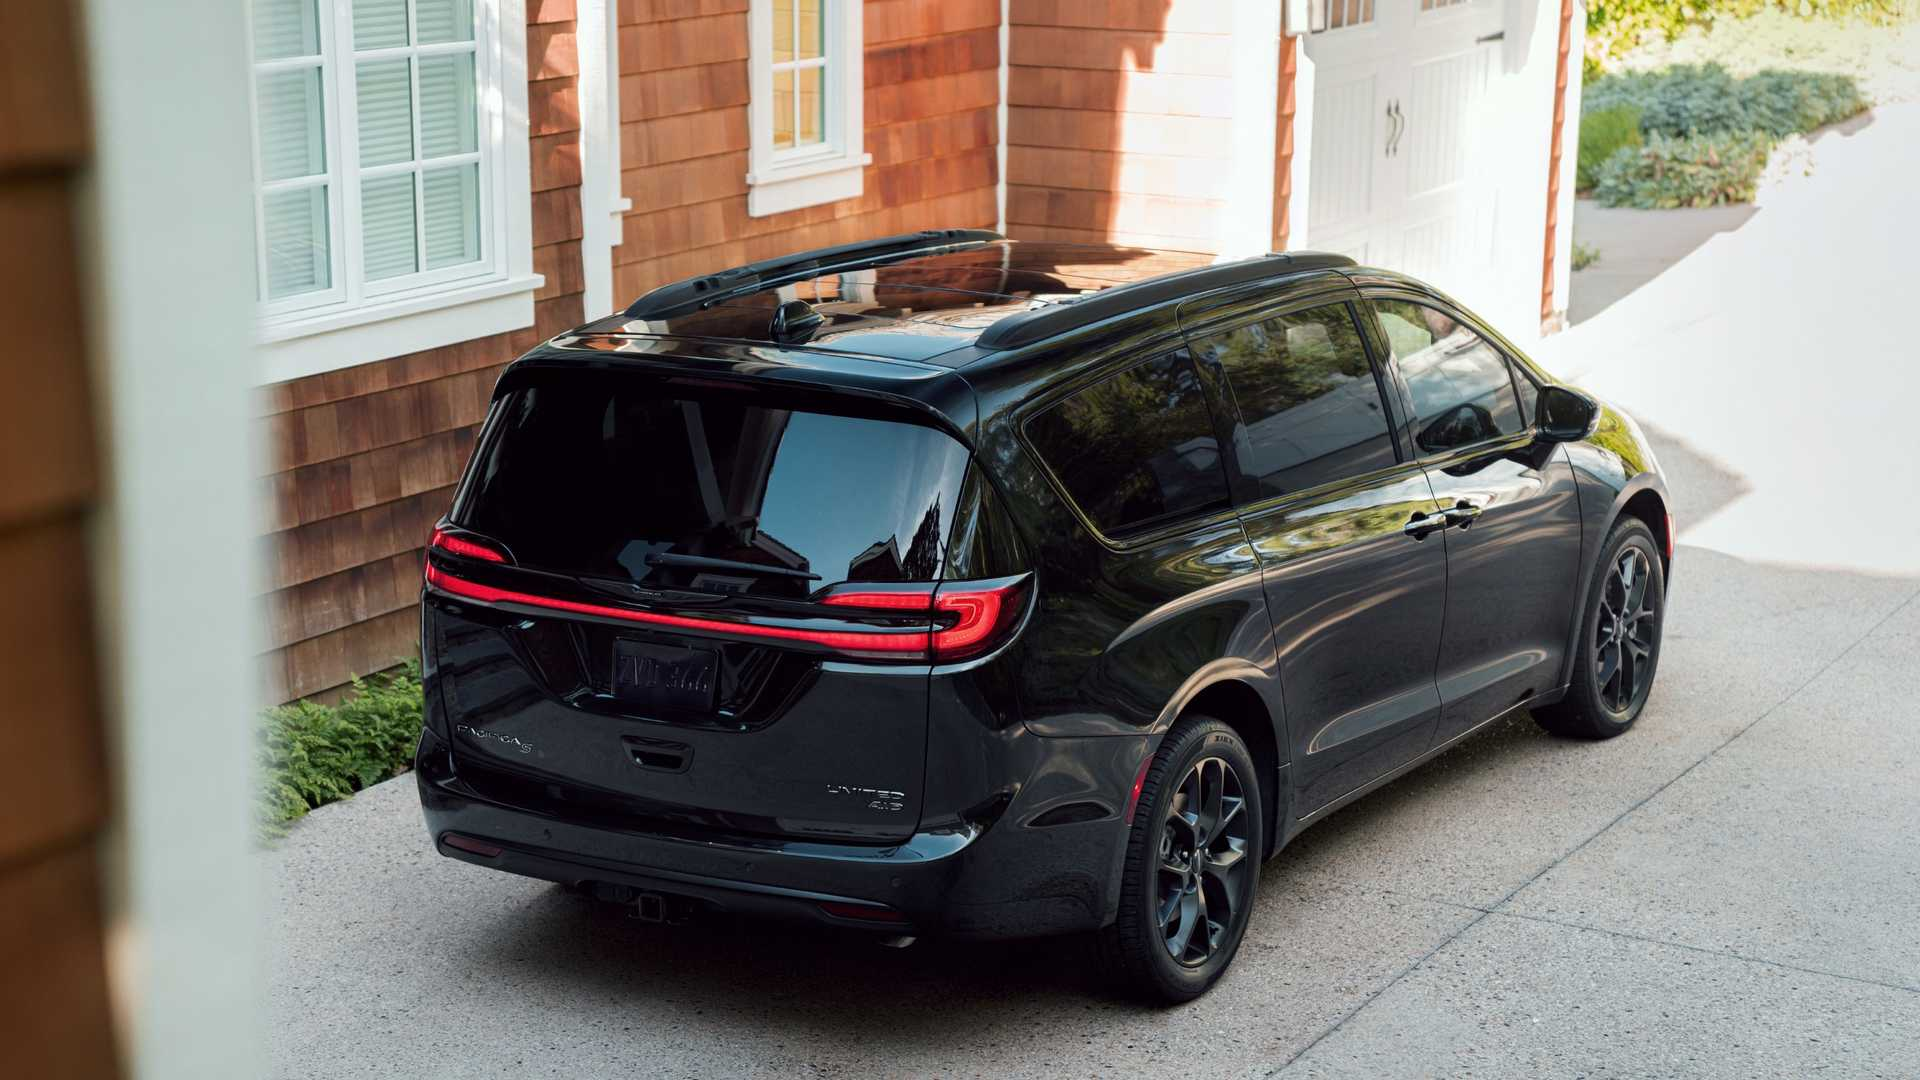 2017 - [Chrysler] Pacifica - Page 4 2021-chrysler-pacifica